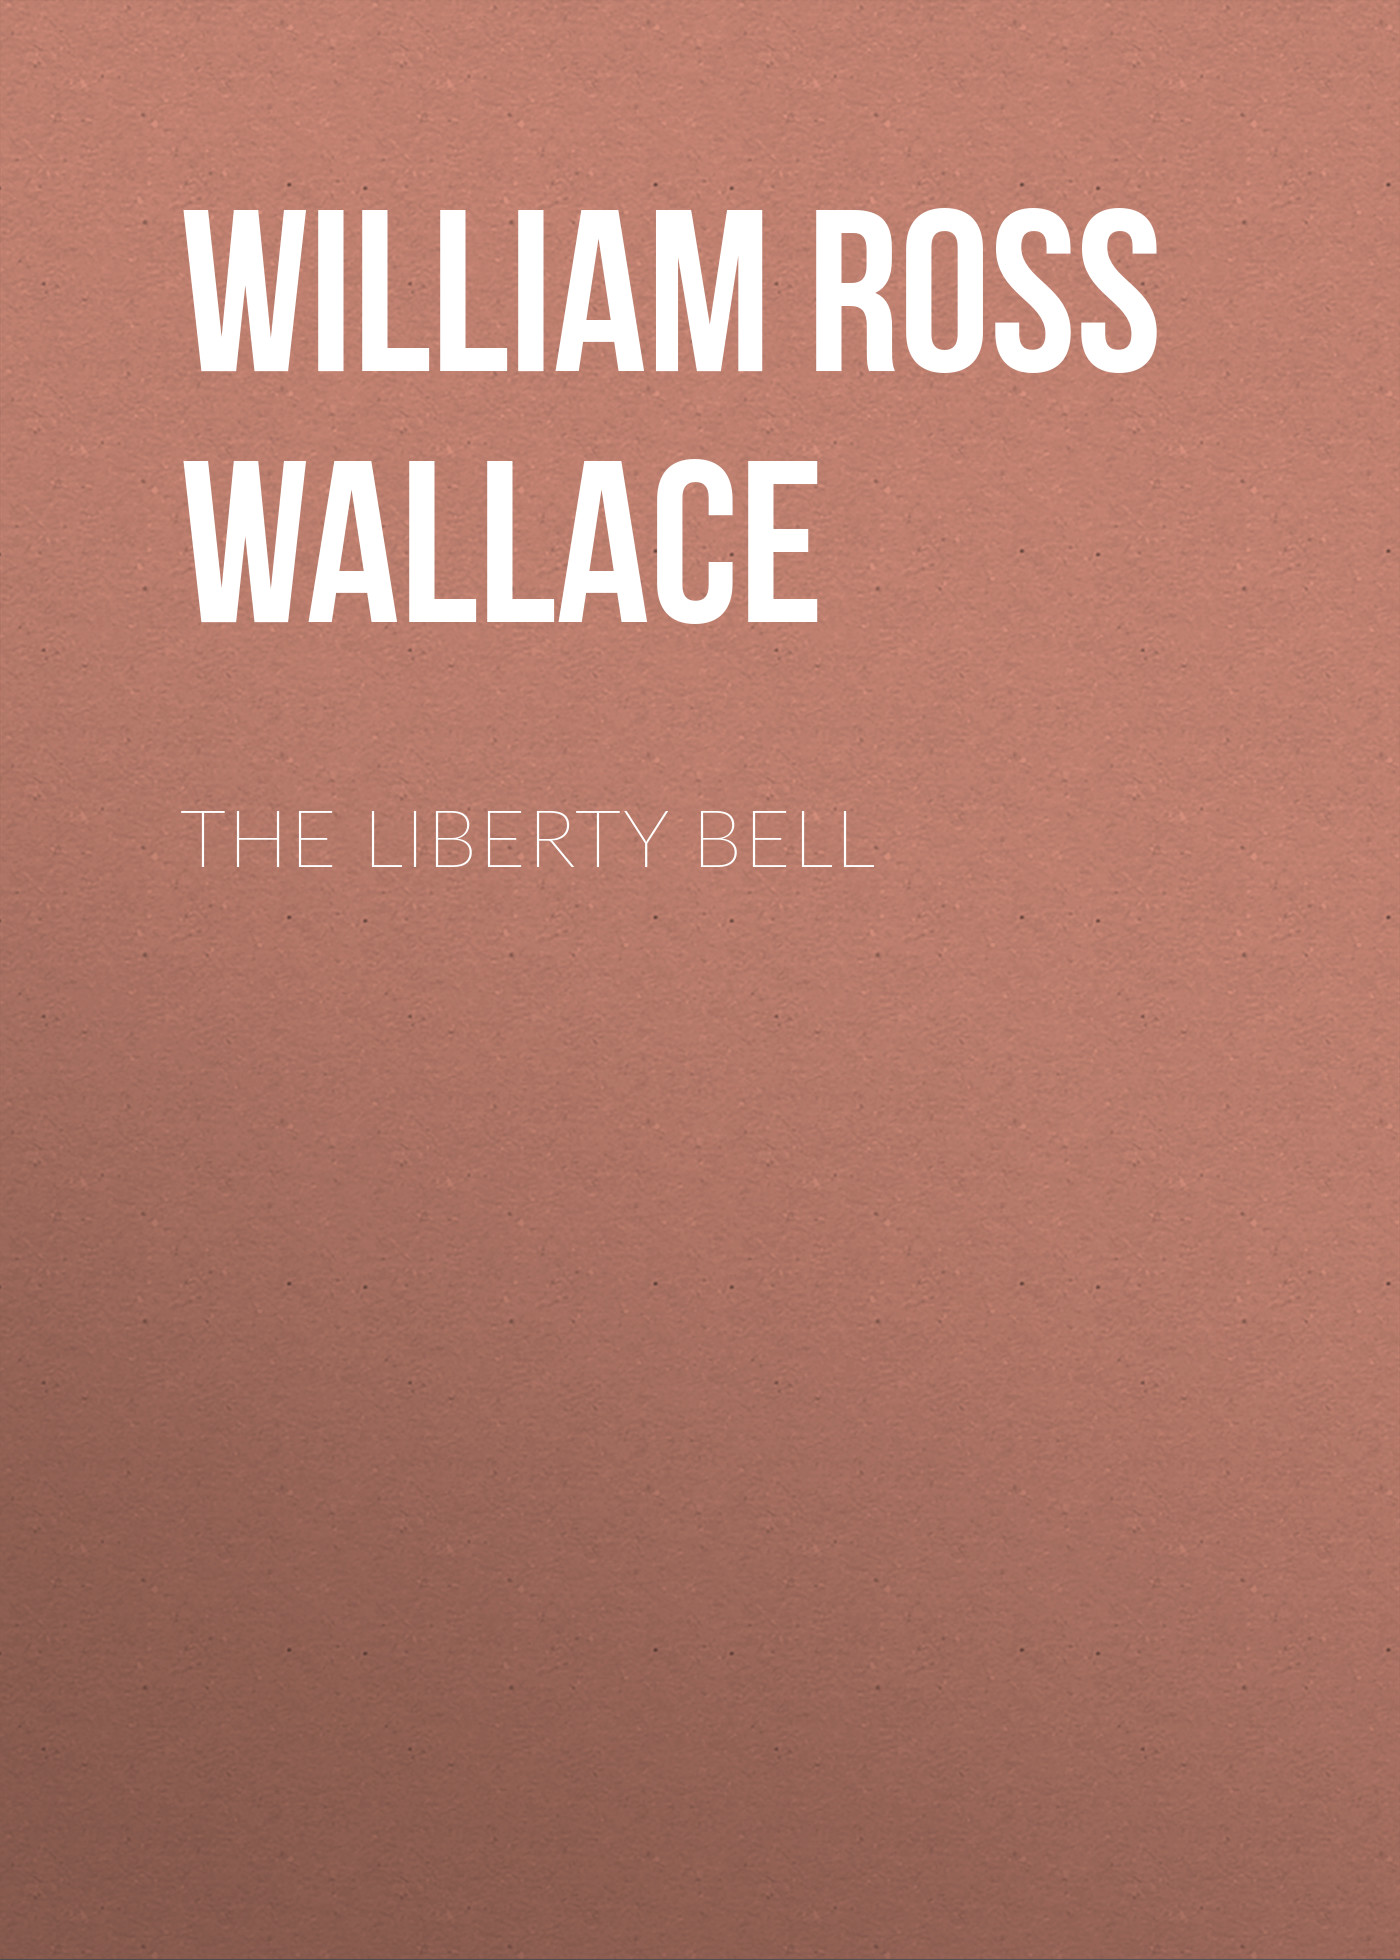 William Ross Wallace The Liberty Bell william ross wallace the liberty bell